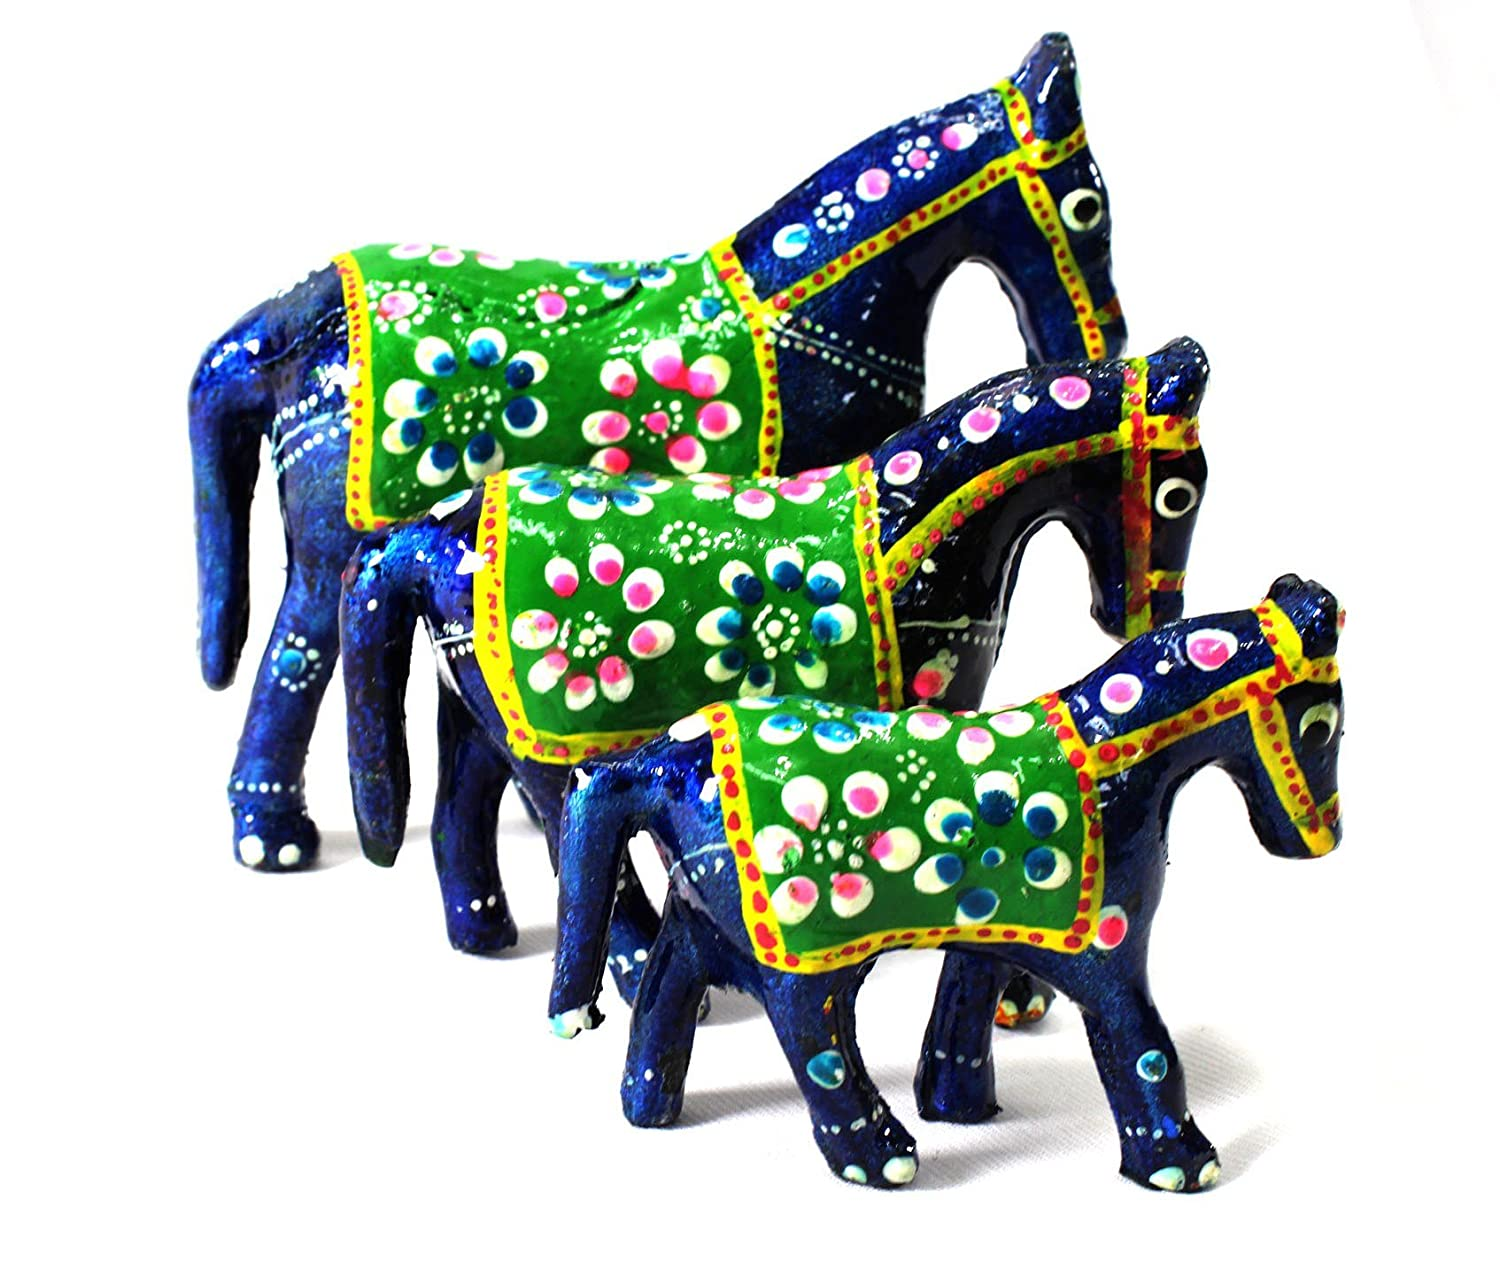 AMBA HANDICRAFT decorative feng shui traditional carved wooden handcrafted thai good luck horse figurine indian craftsmanship for home work Diwali anniversary birthday interior gift.W156